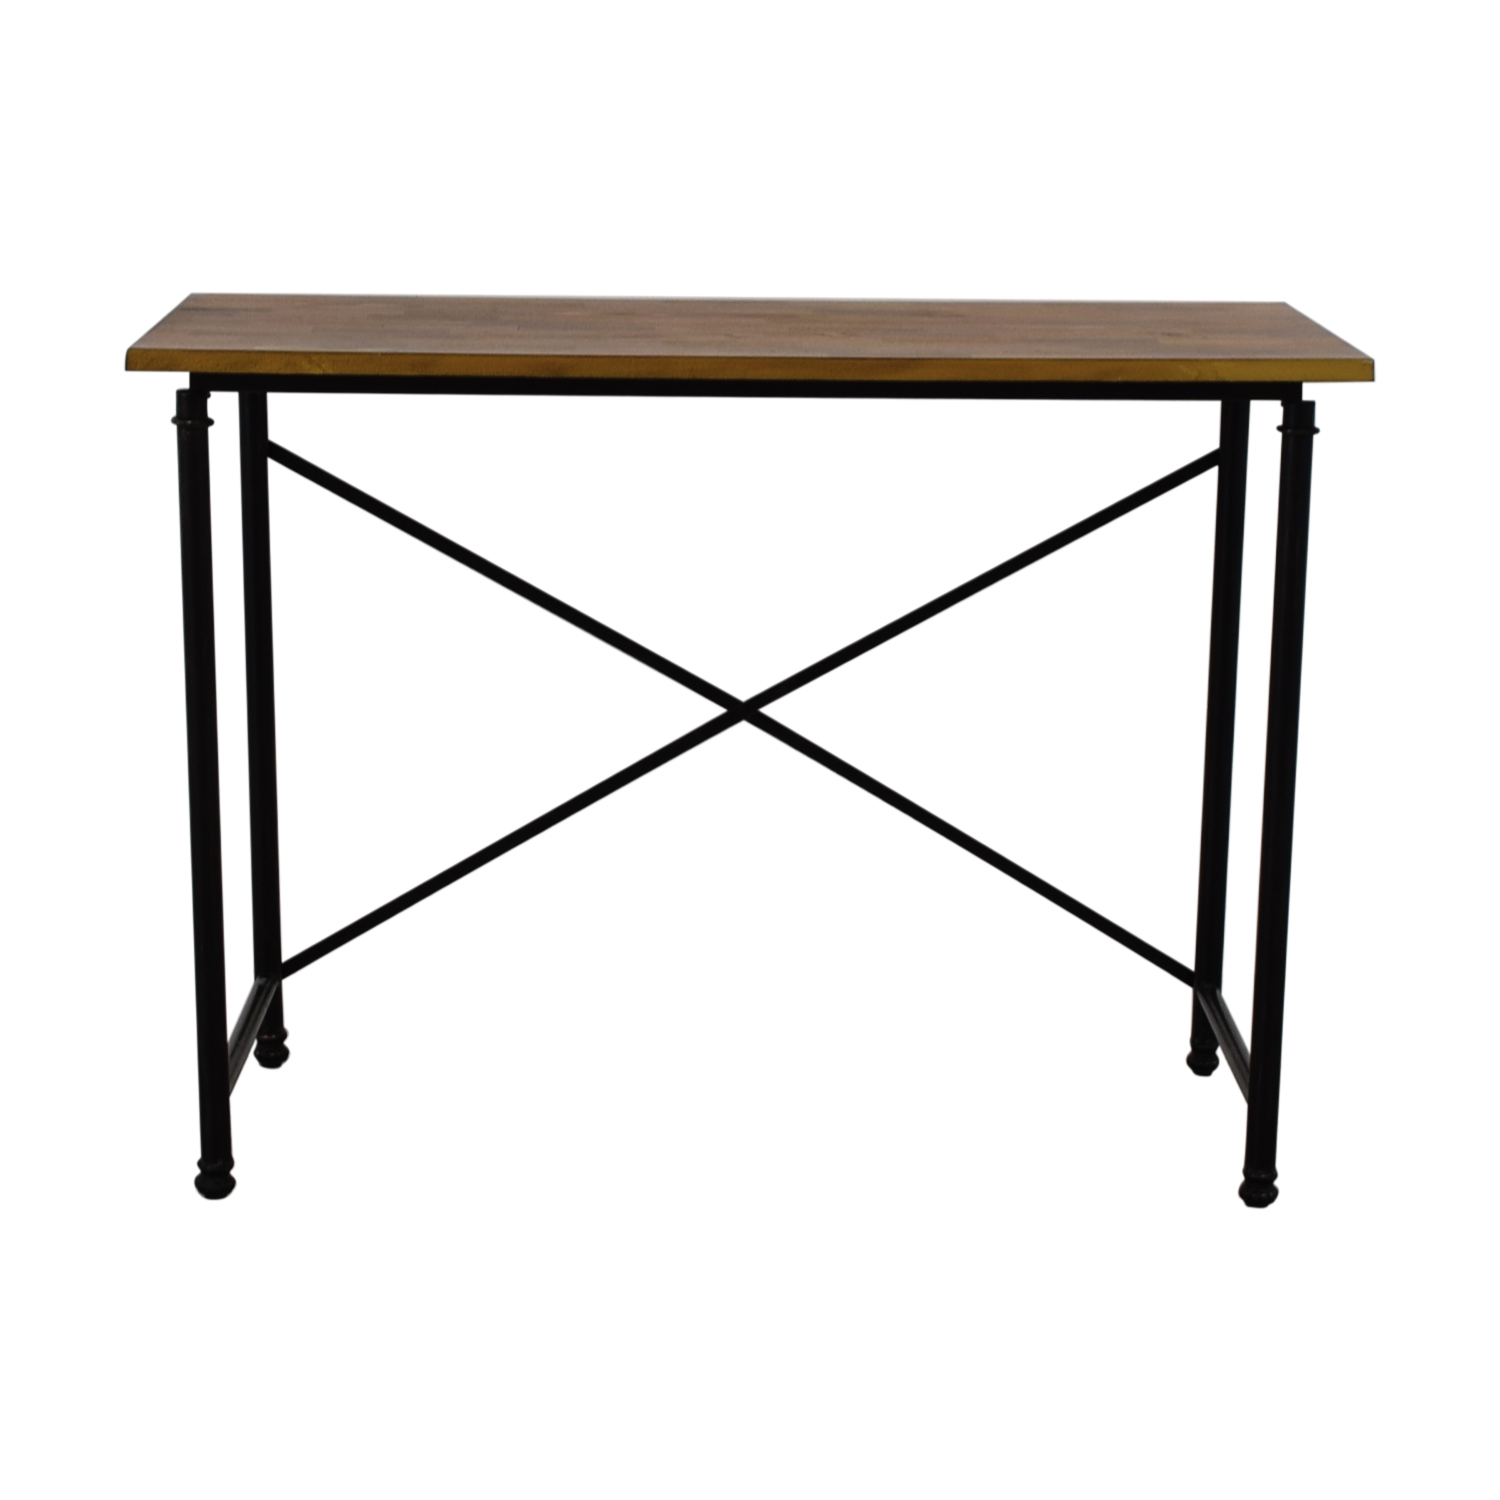 Wood and Metal Desk on sale